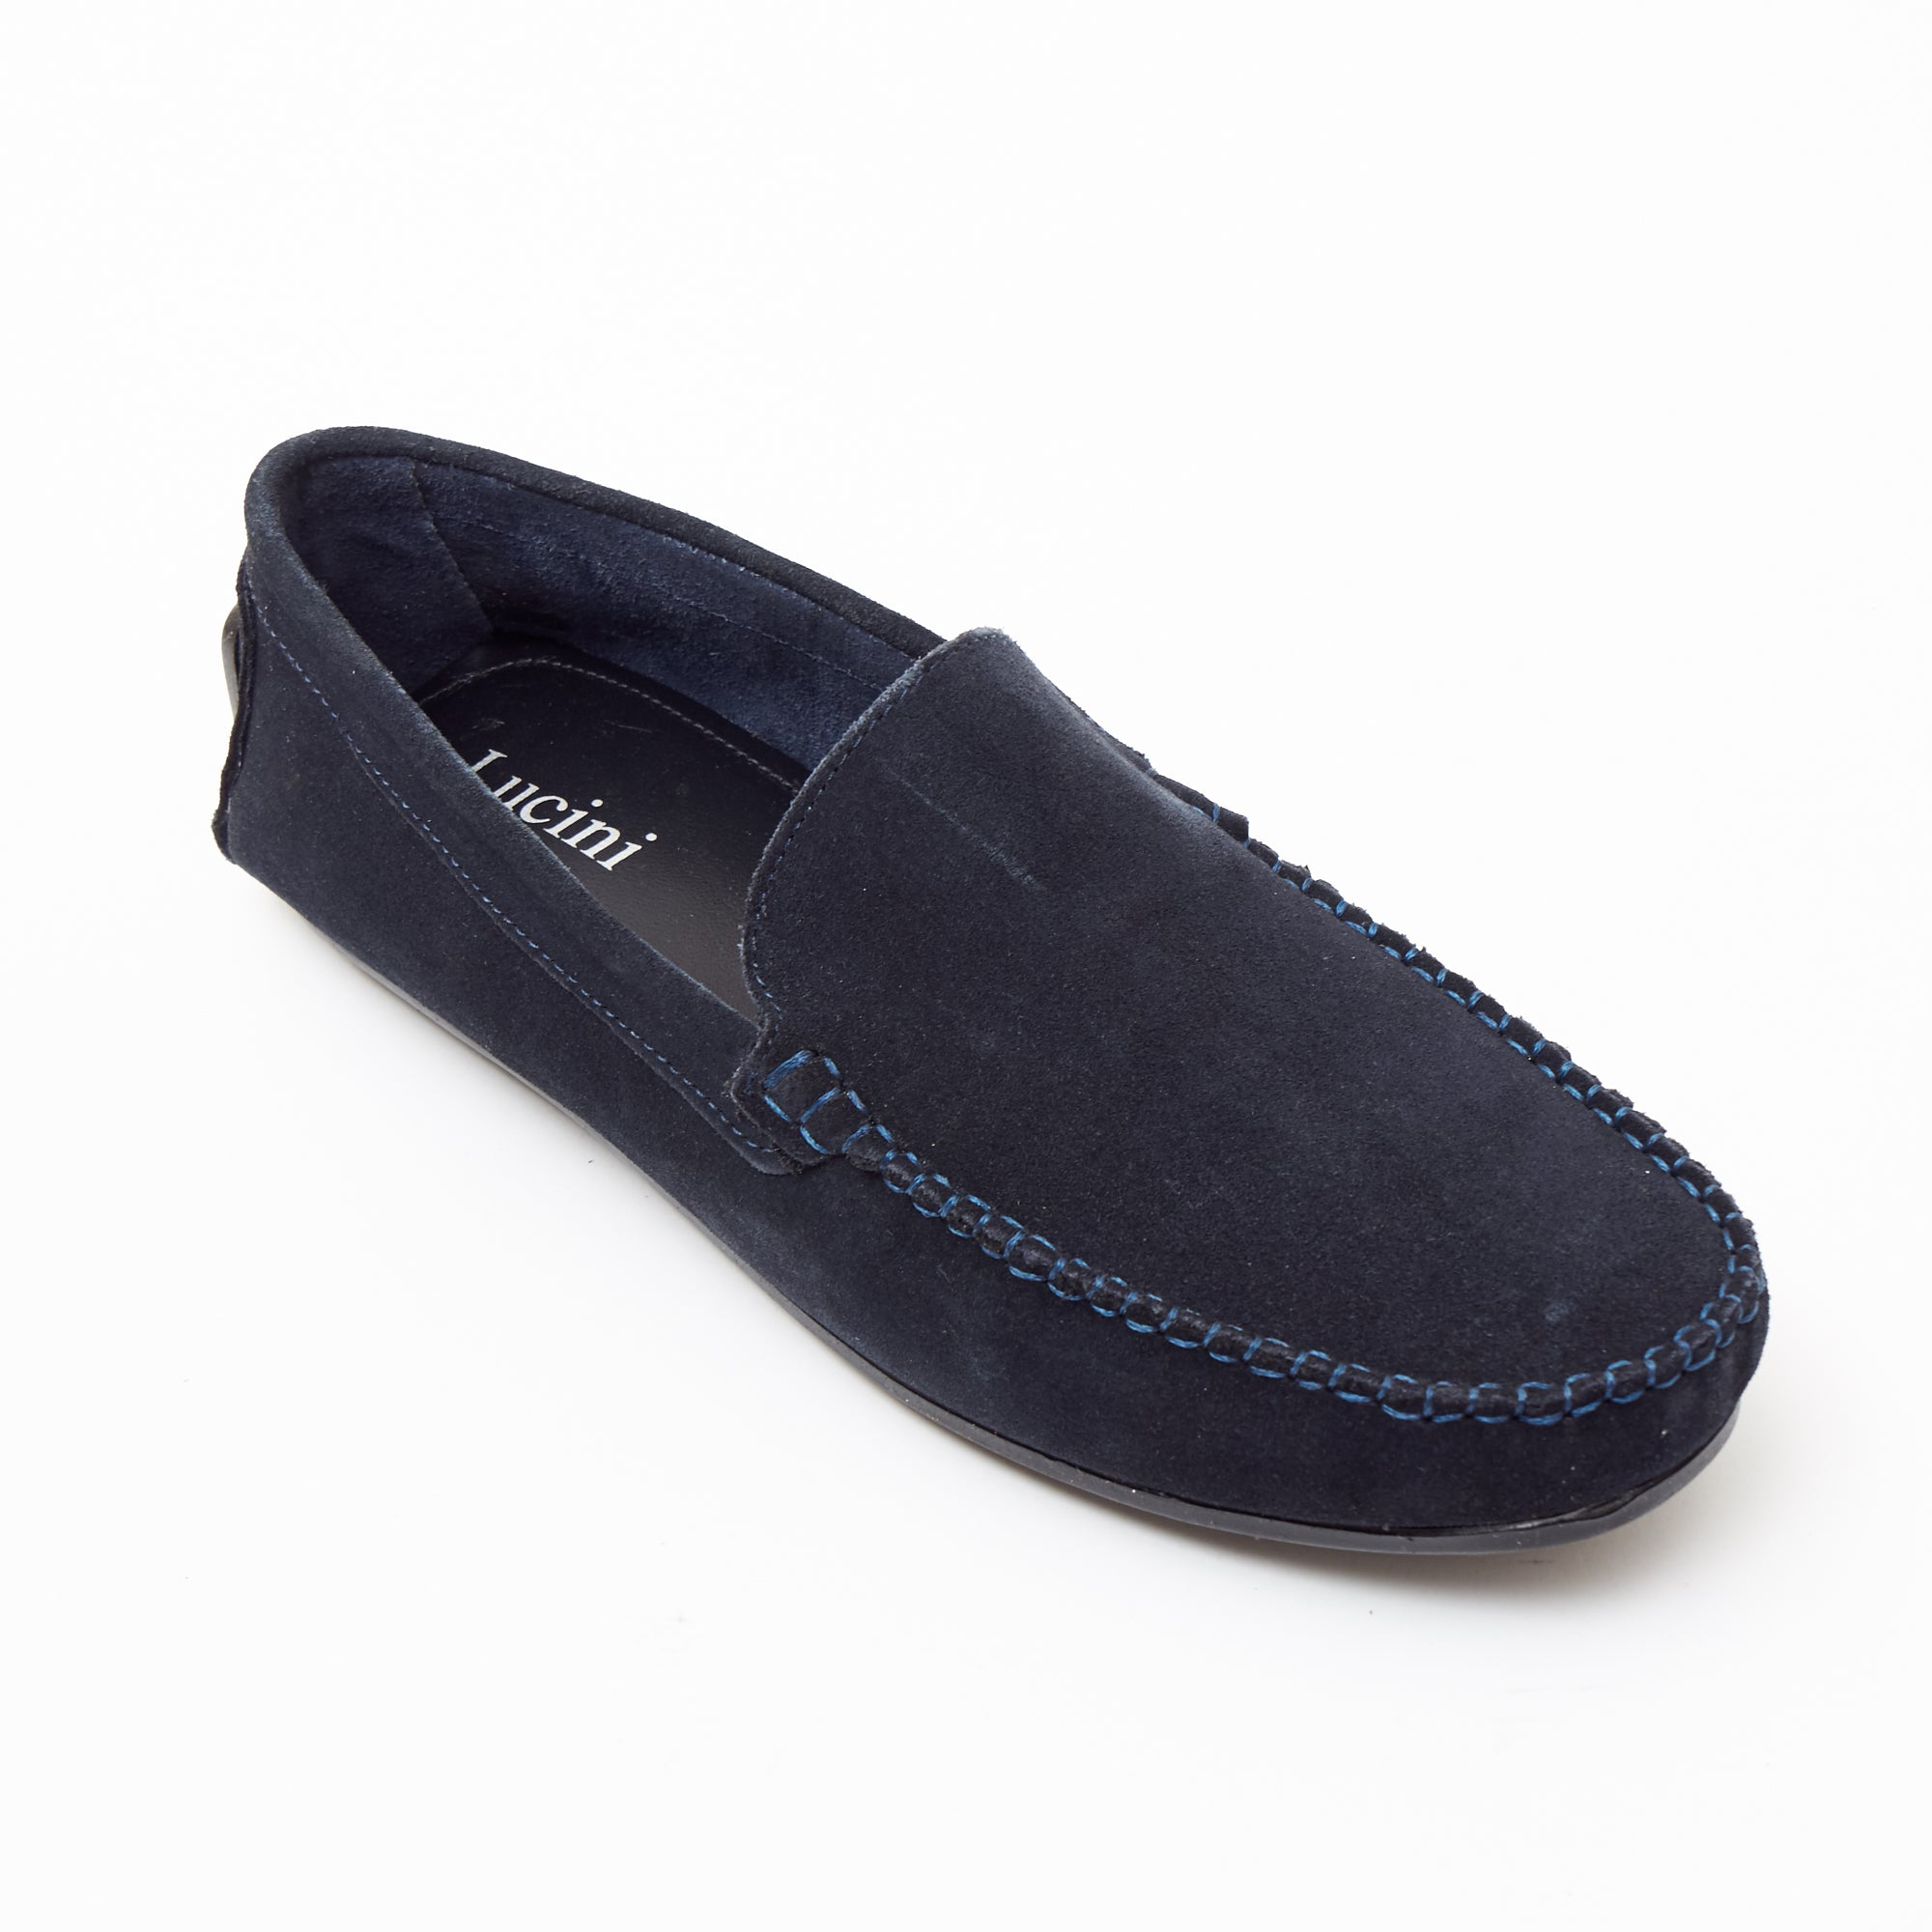 Mens Suede Casual Slip On Shoes - 4611-P_Navyblue